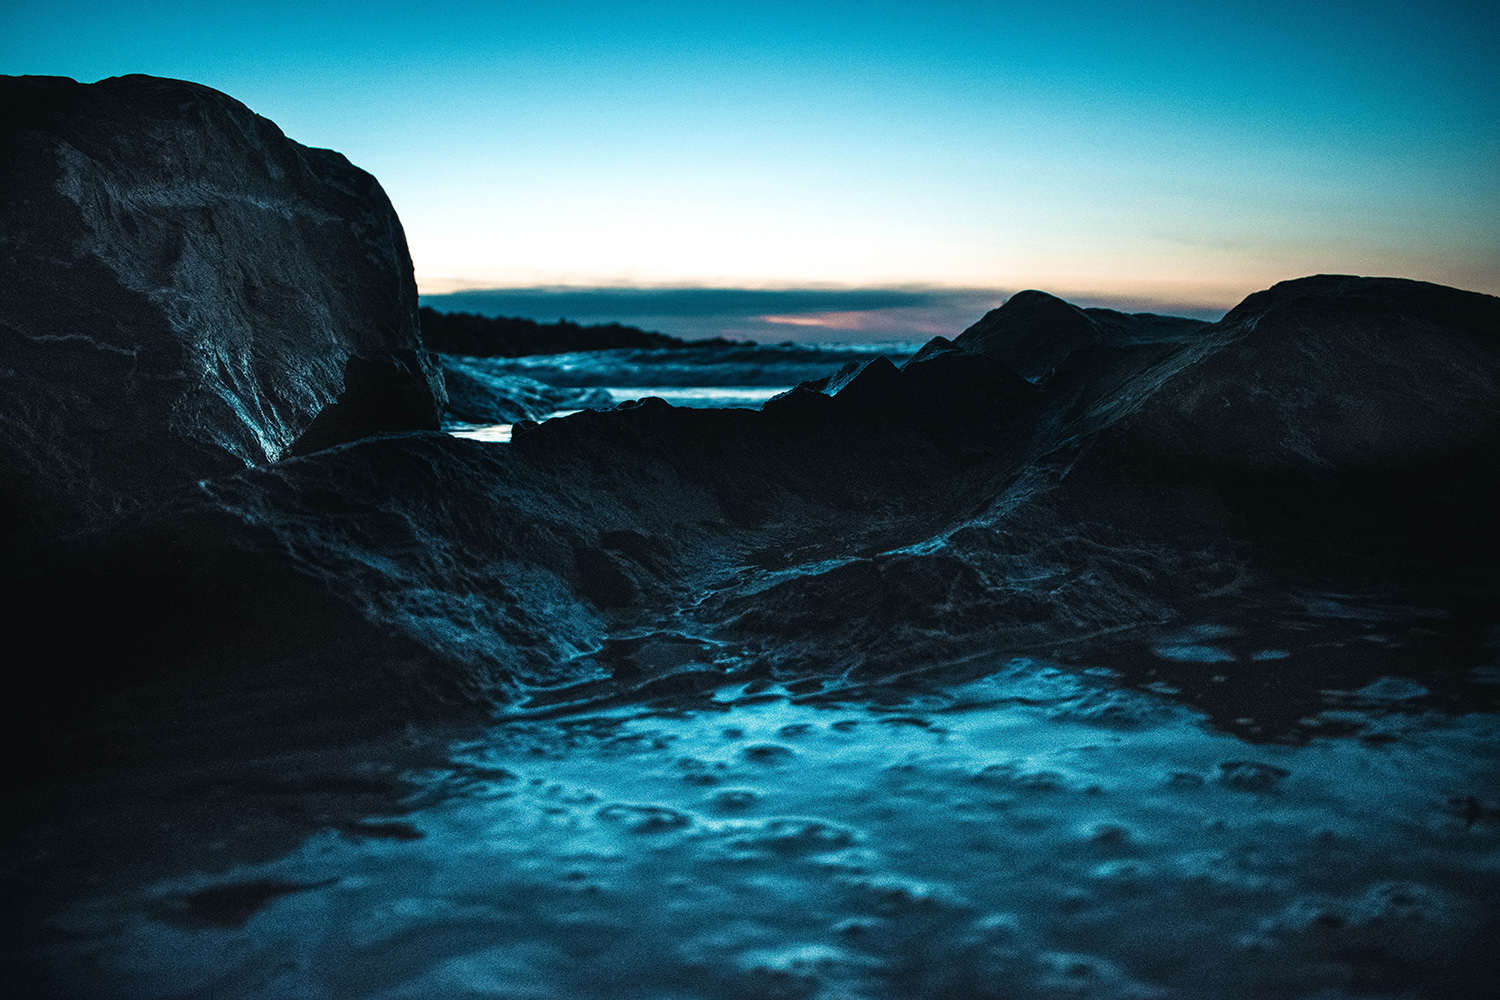 Rocky ocean with foam at sunset